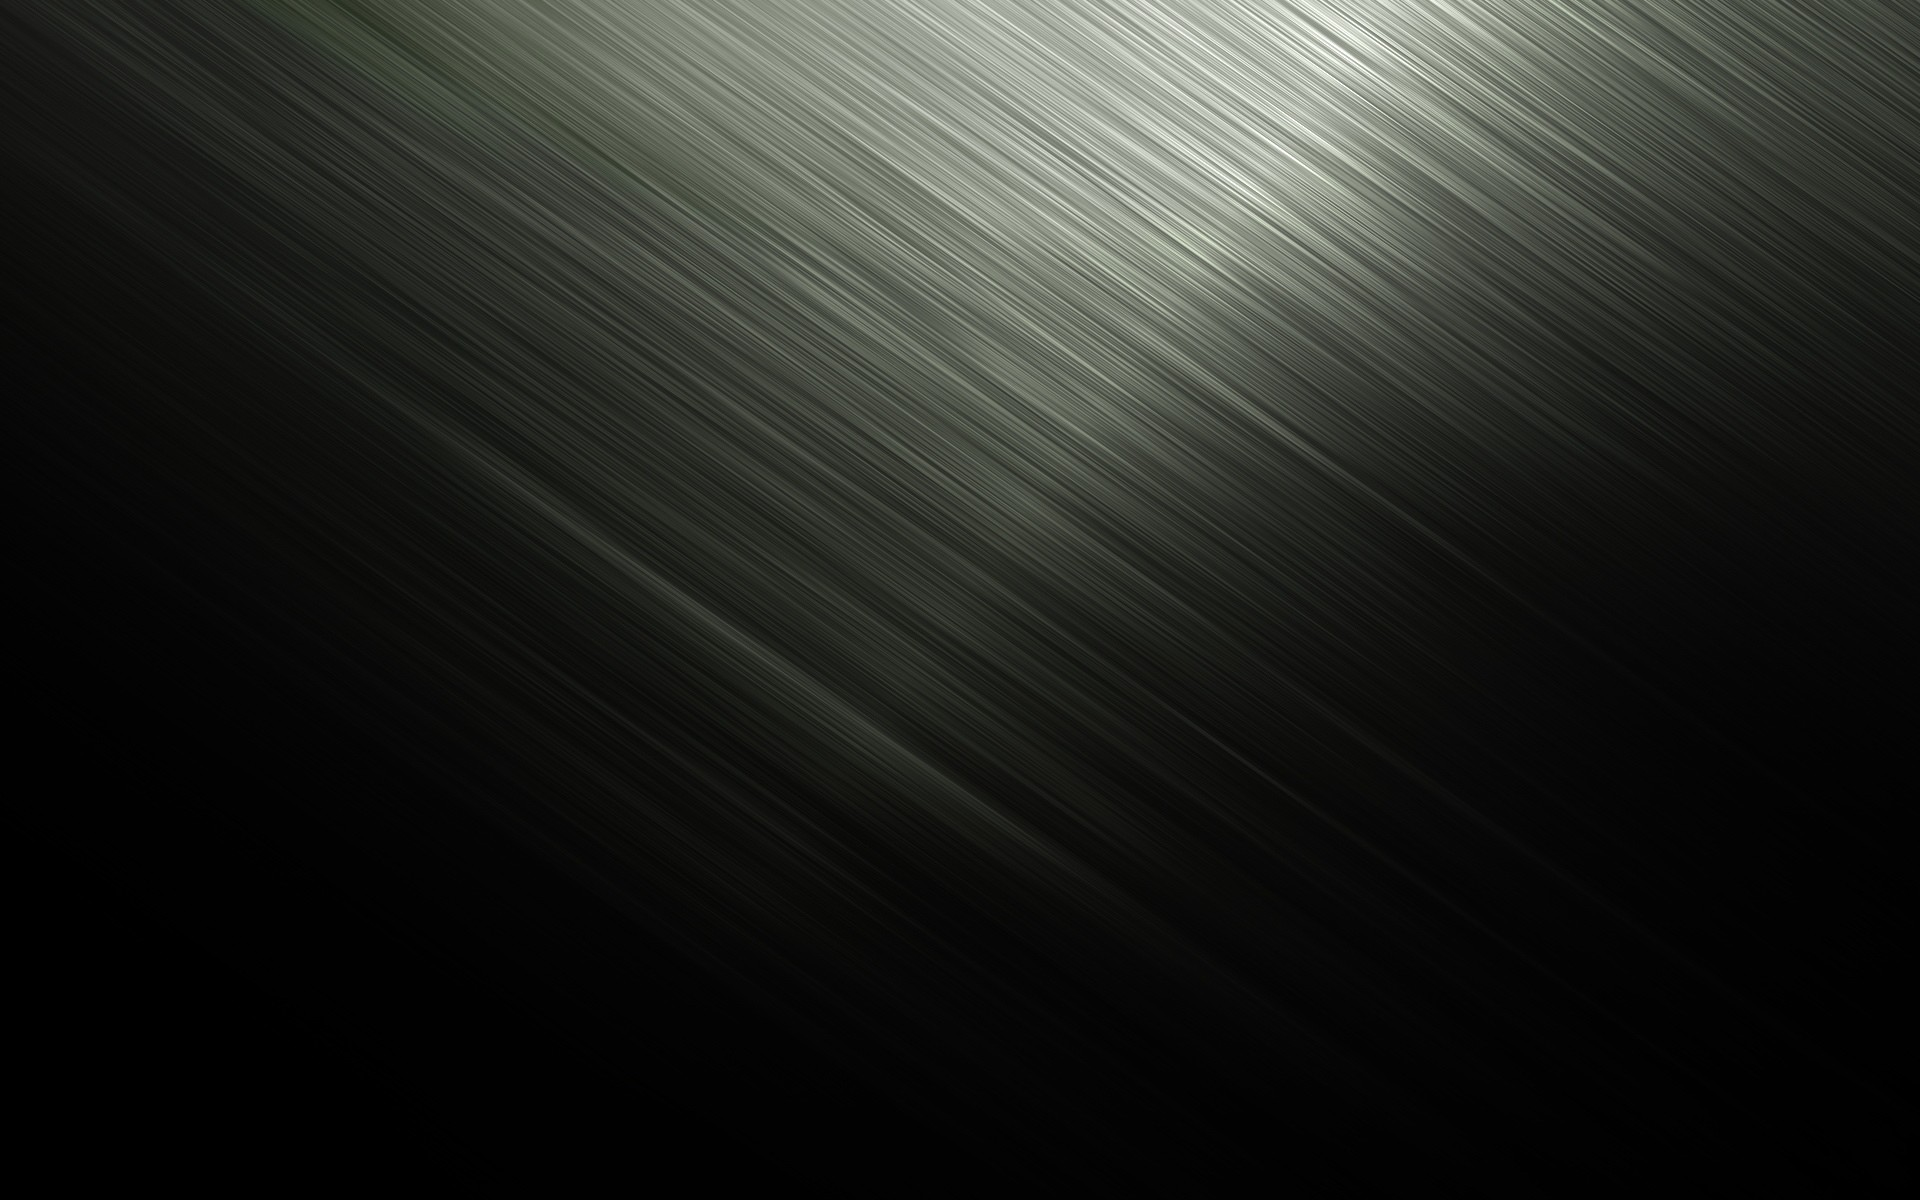 black abstract wallpapers 10 hd wallpaper